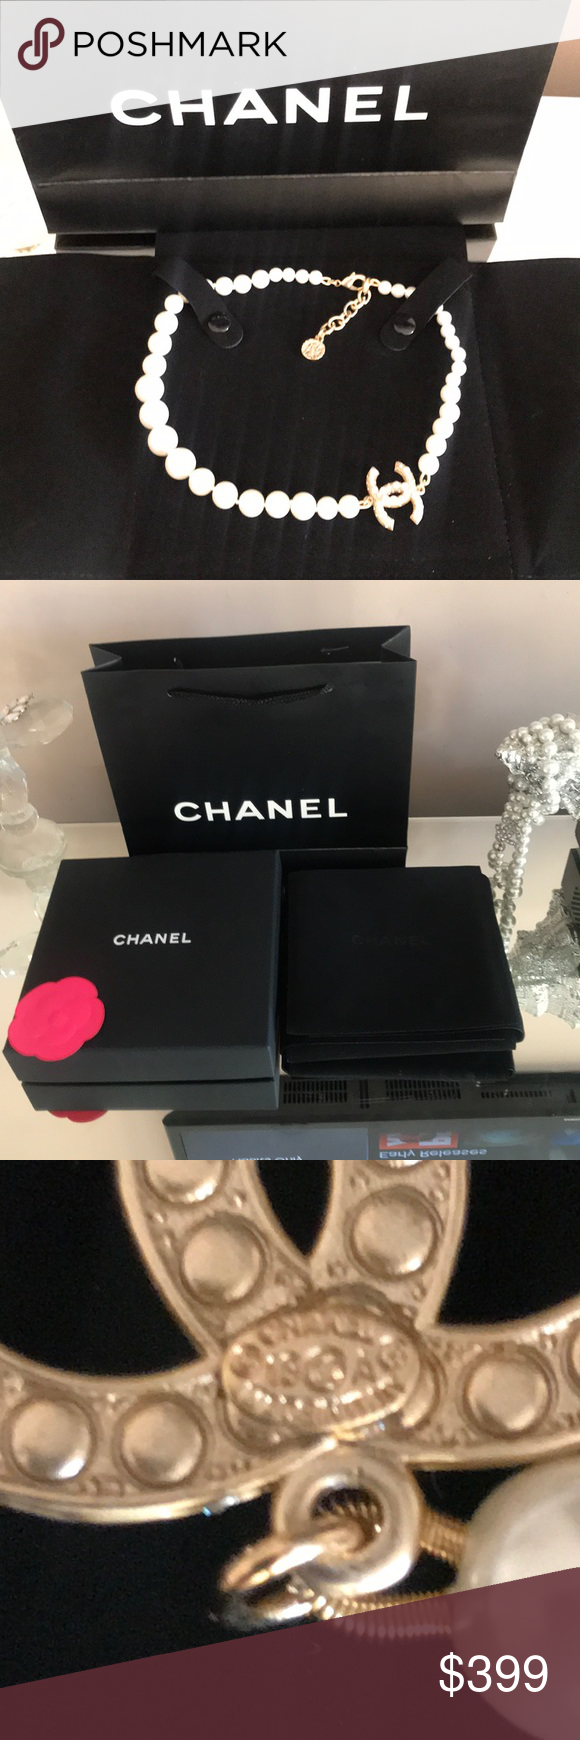 Chanel necklace large logo box bag pouch Amazing Chanel